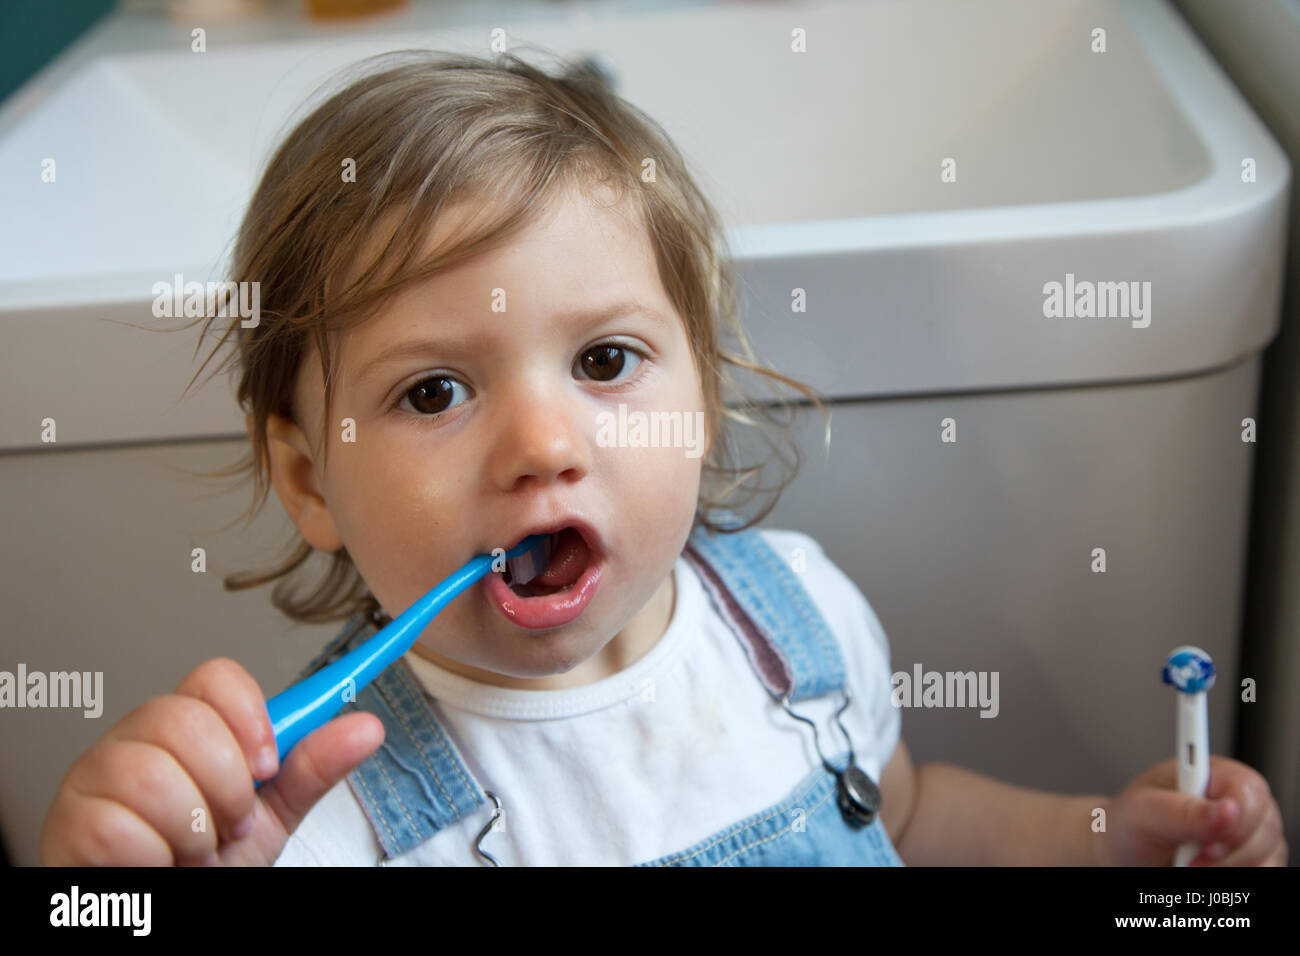 Girl toddler brushing her teeth using a child toothbrush, and holding an adult electric toothbrush in her other - Stock Image